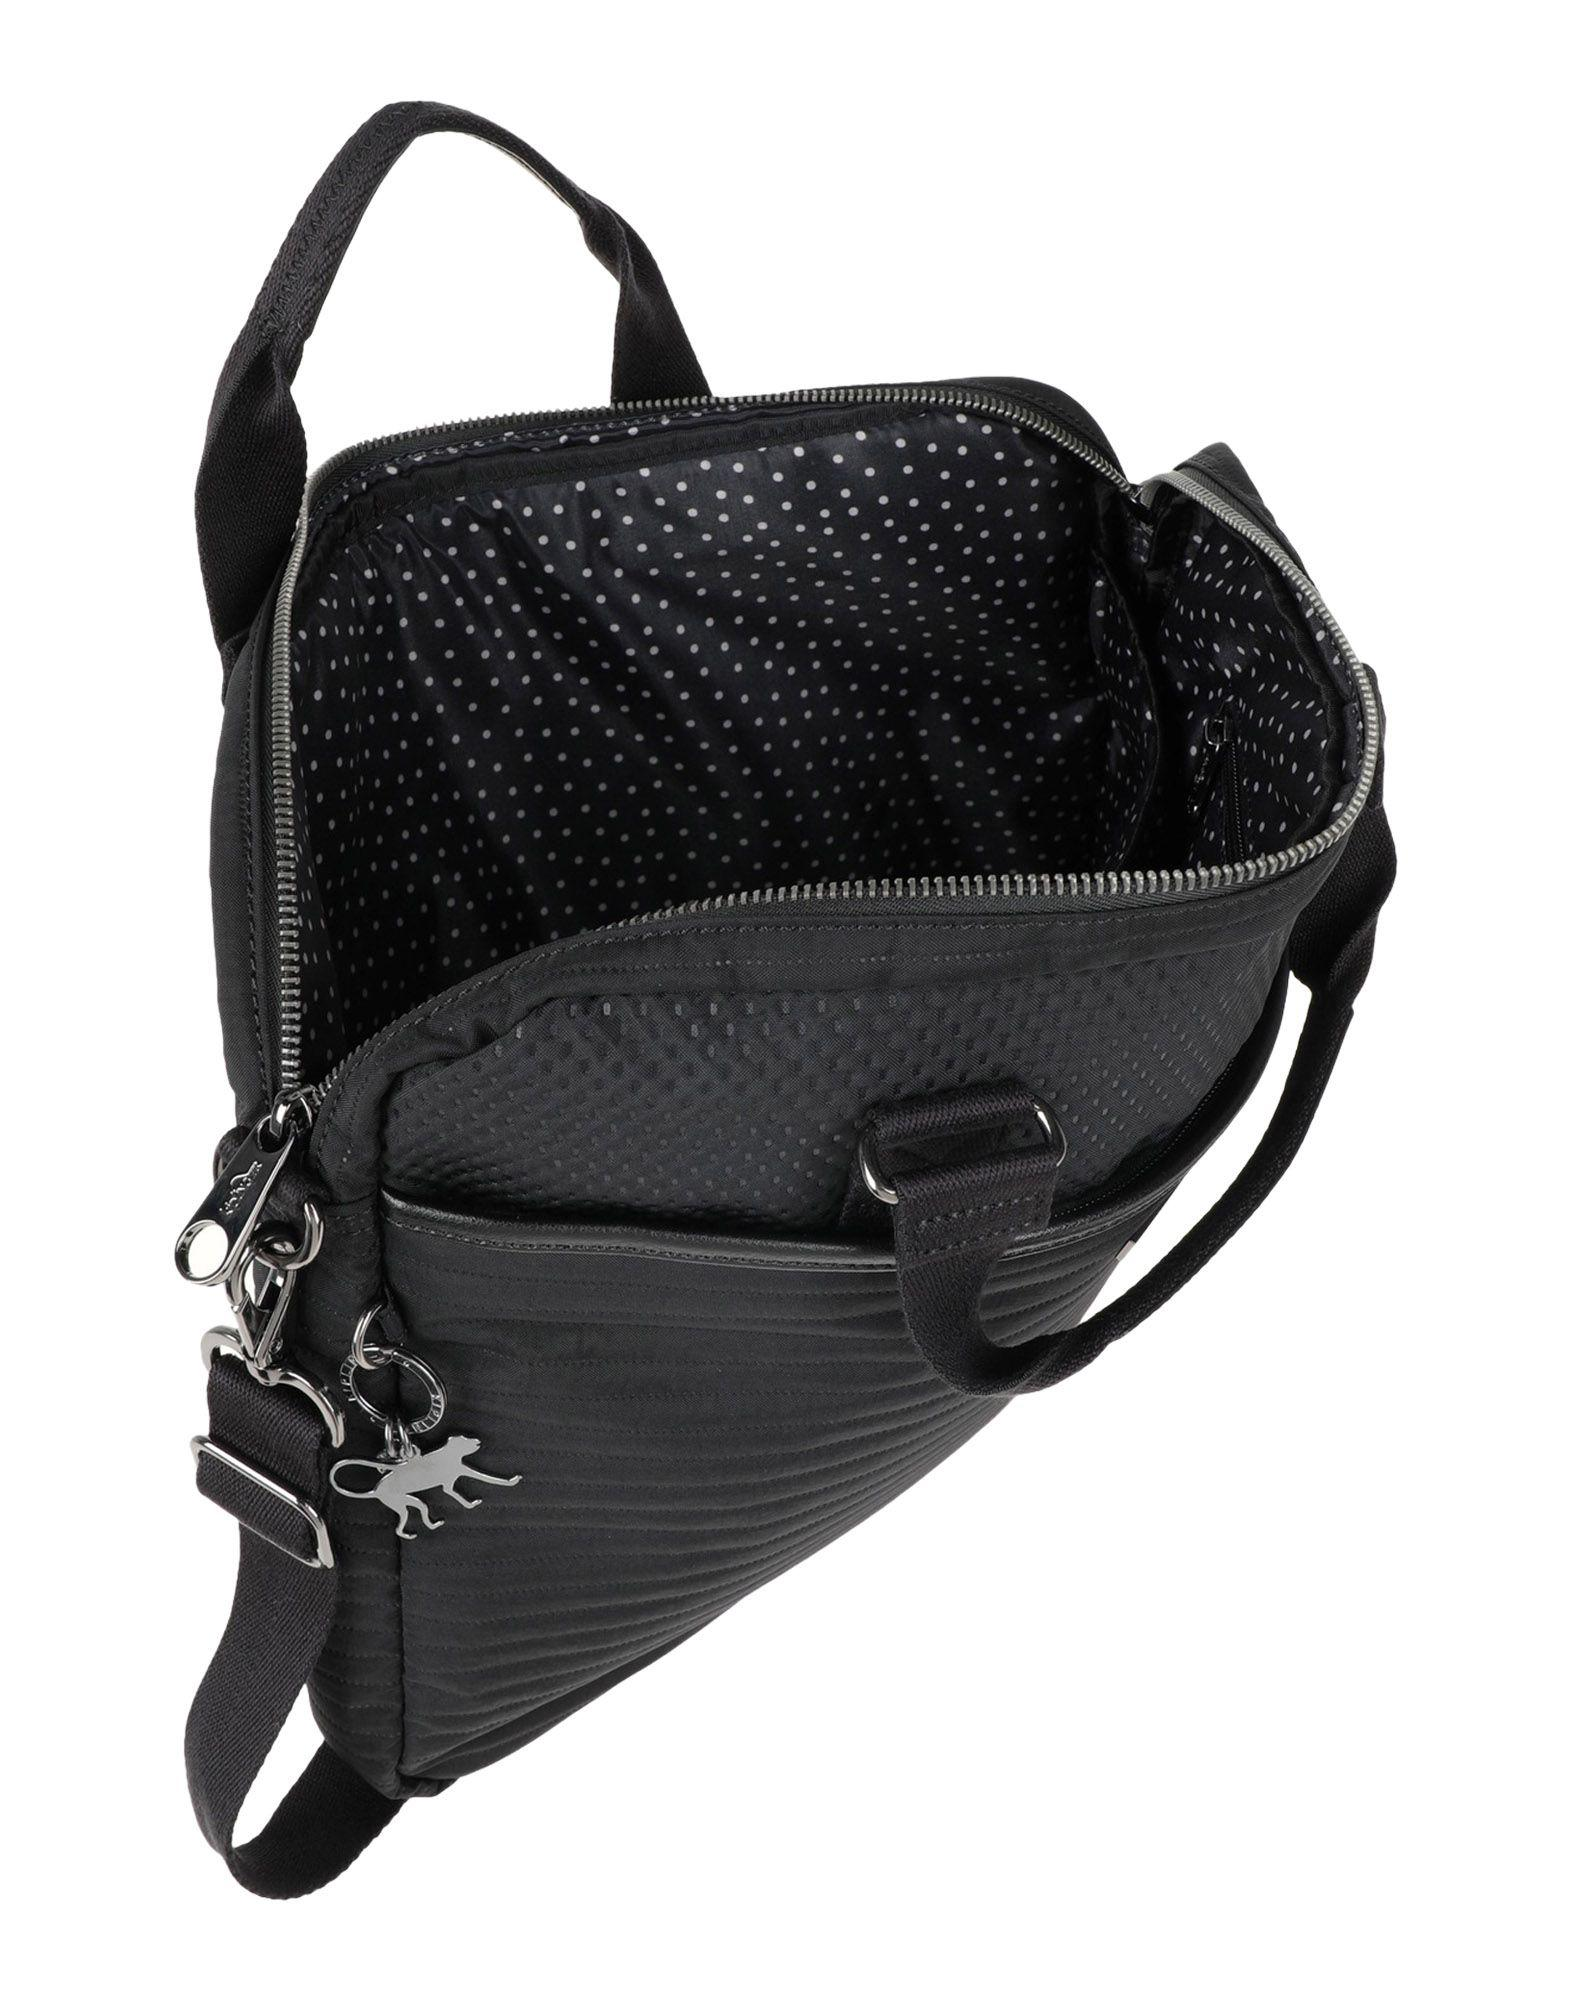 b79675b31a Lyst - Kipling Work Bags in Black